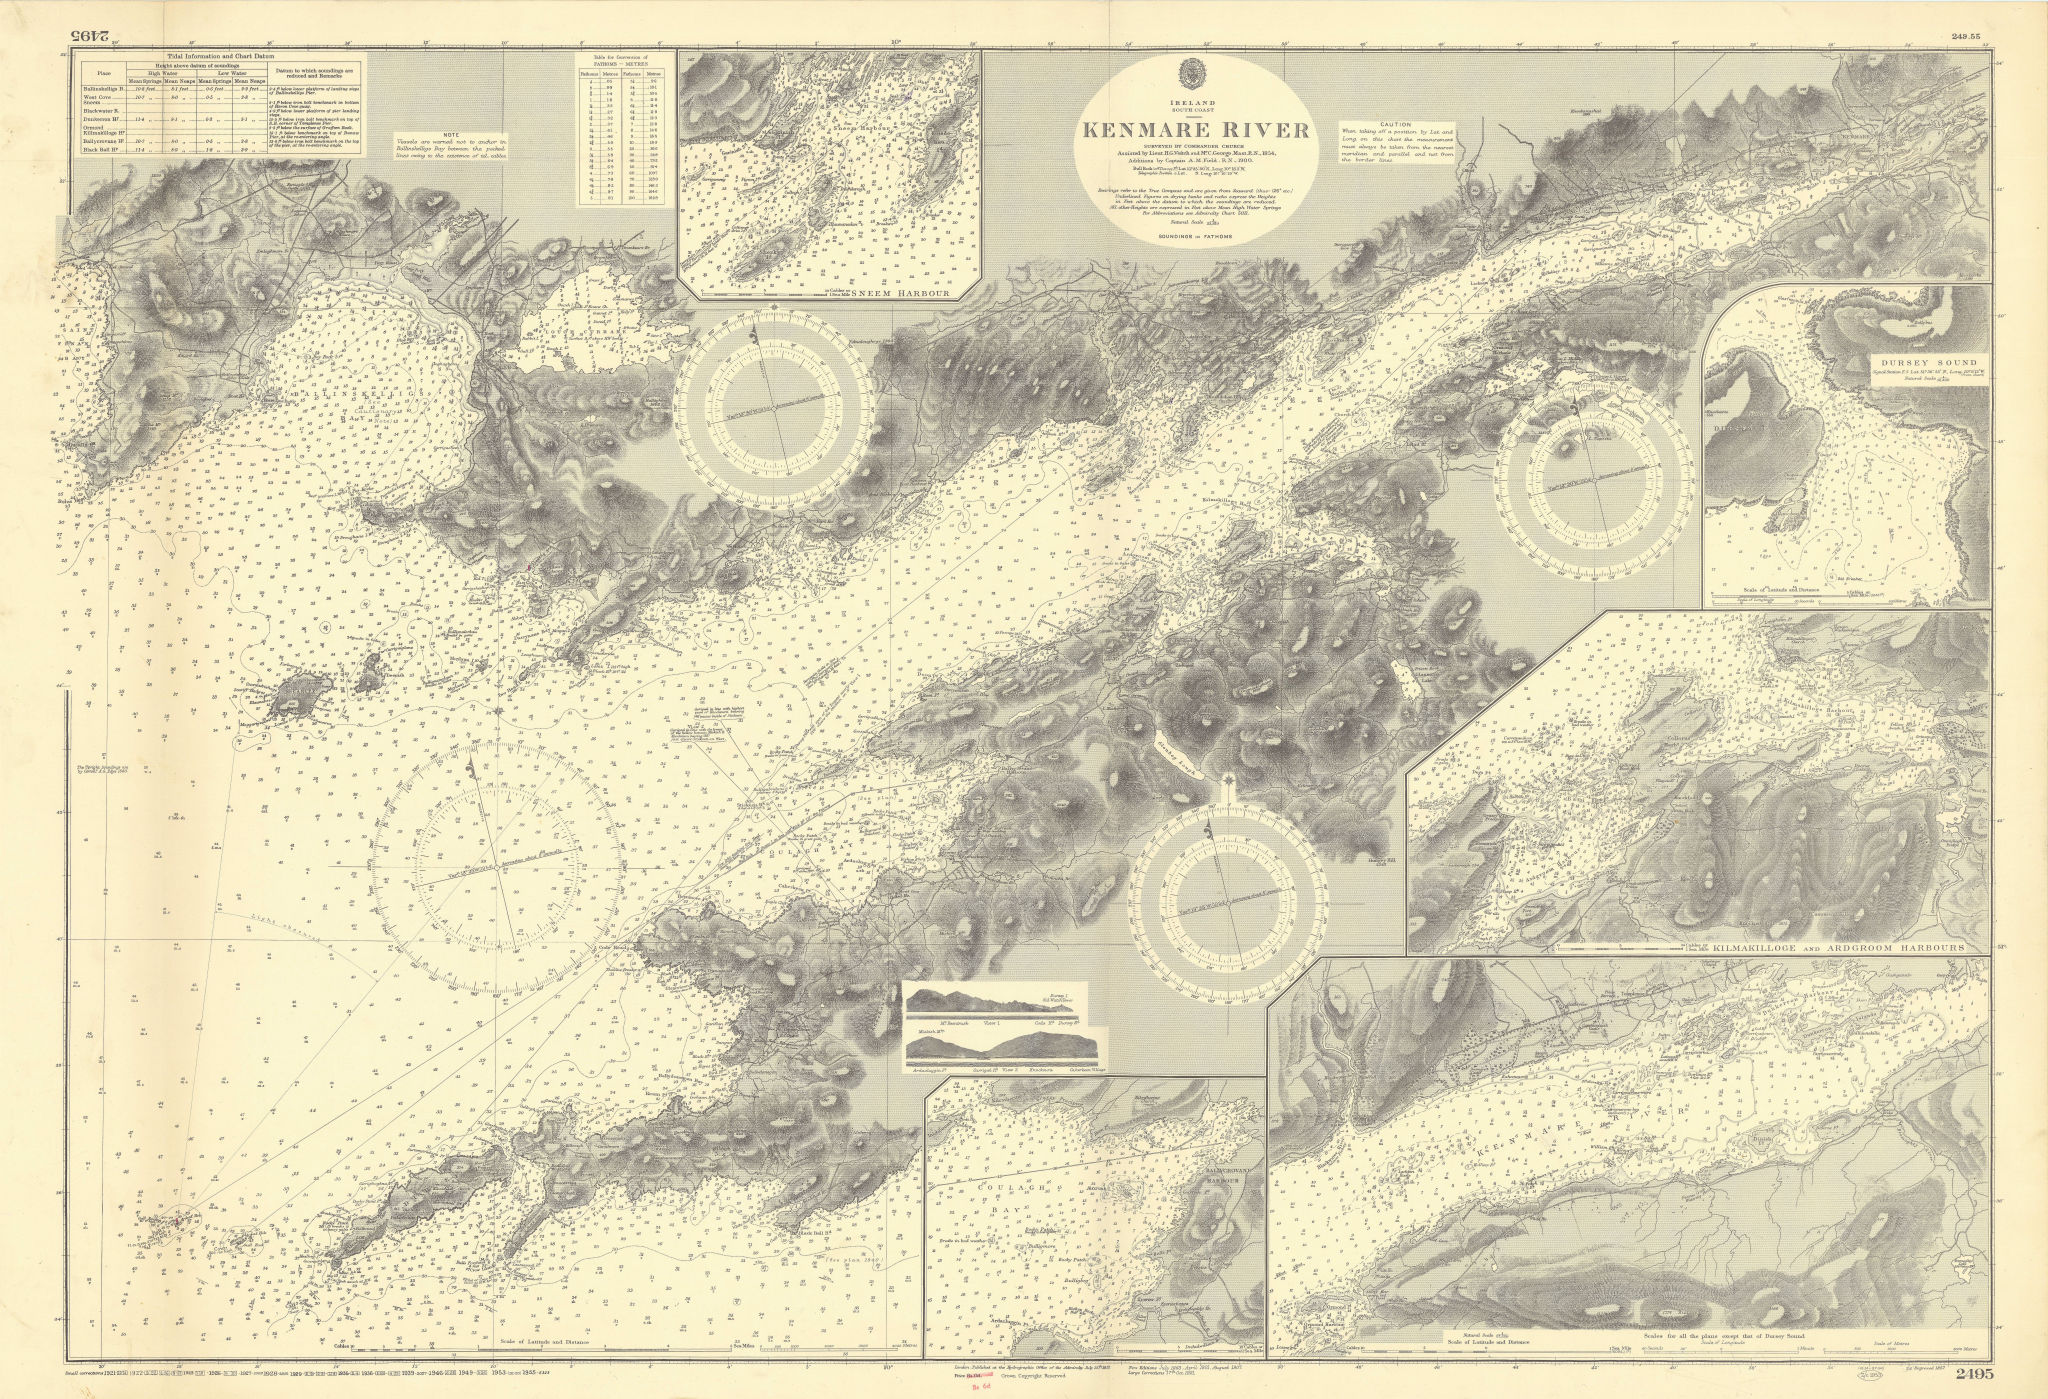 Kenmare River & harbours. Ireland. ADMIRALTY sea chart 1857 (1955) old map